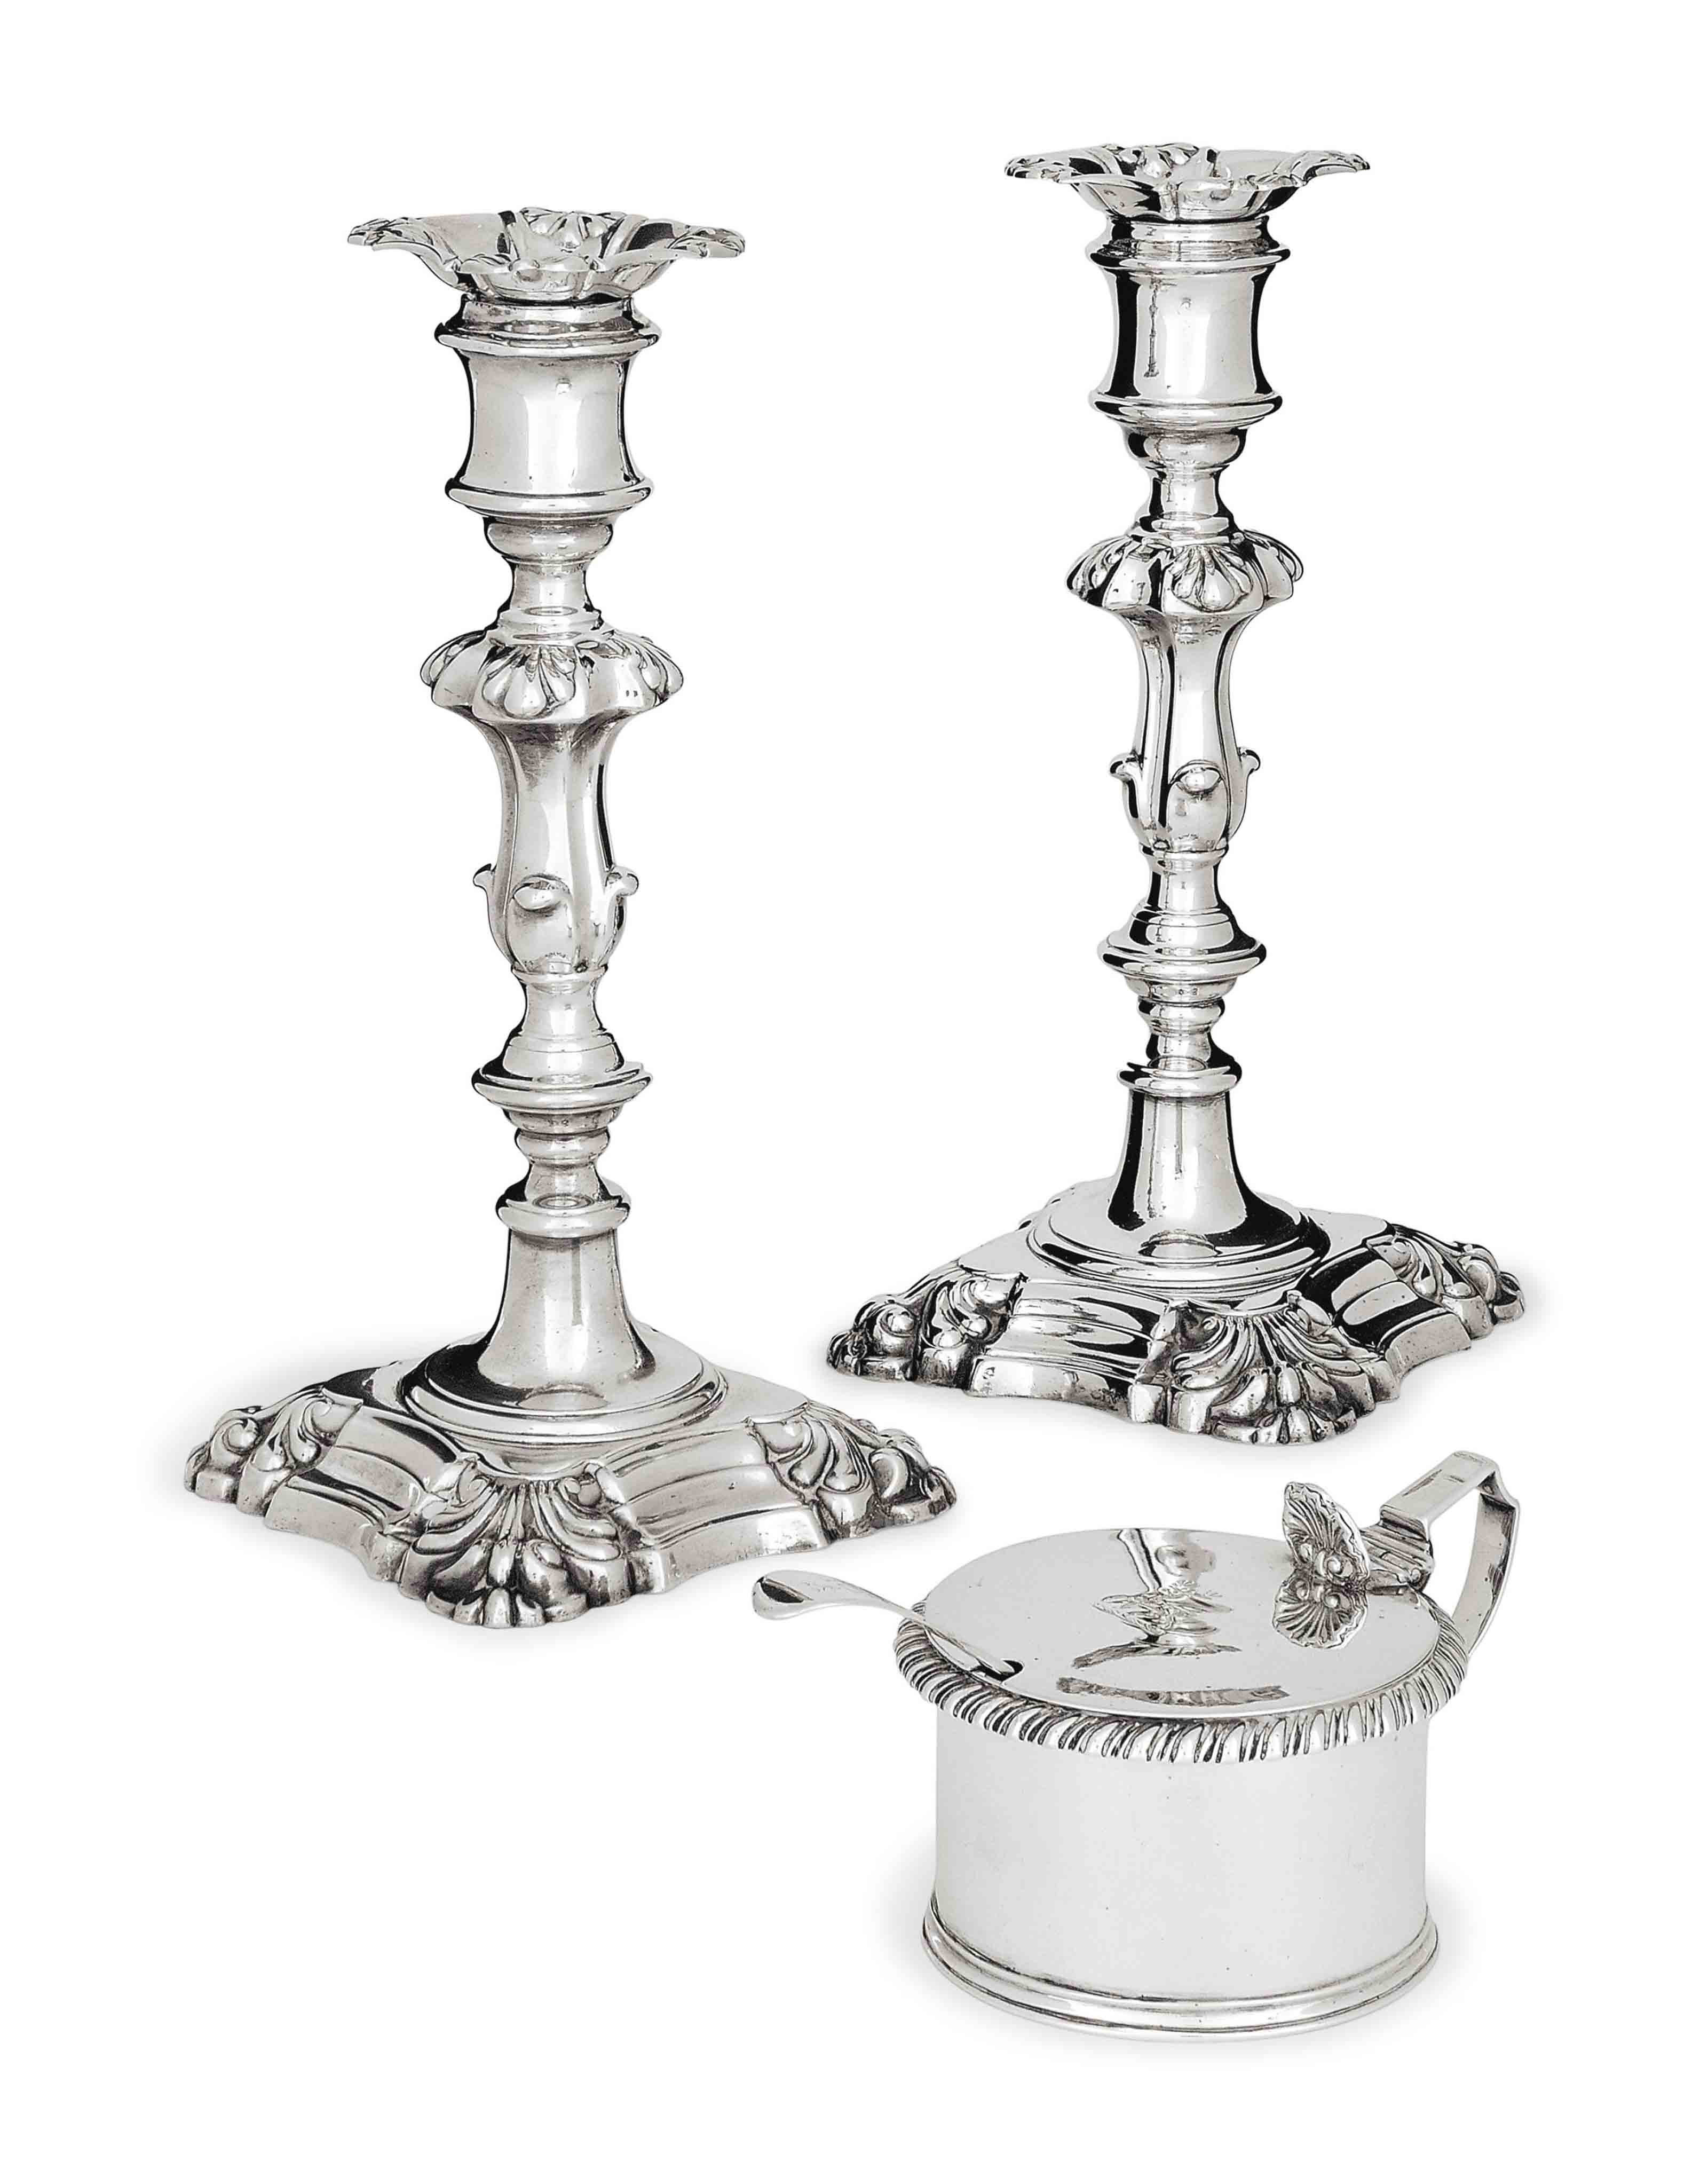 A PAIR OF GEORGE IV SILVER CANDLESTICKS